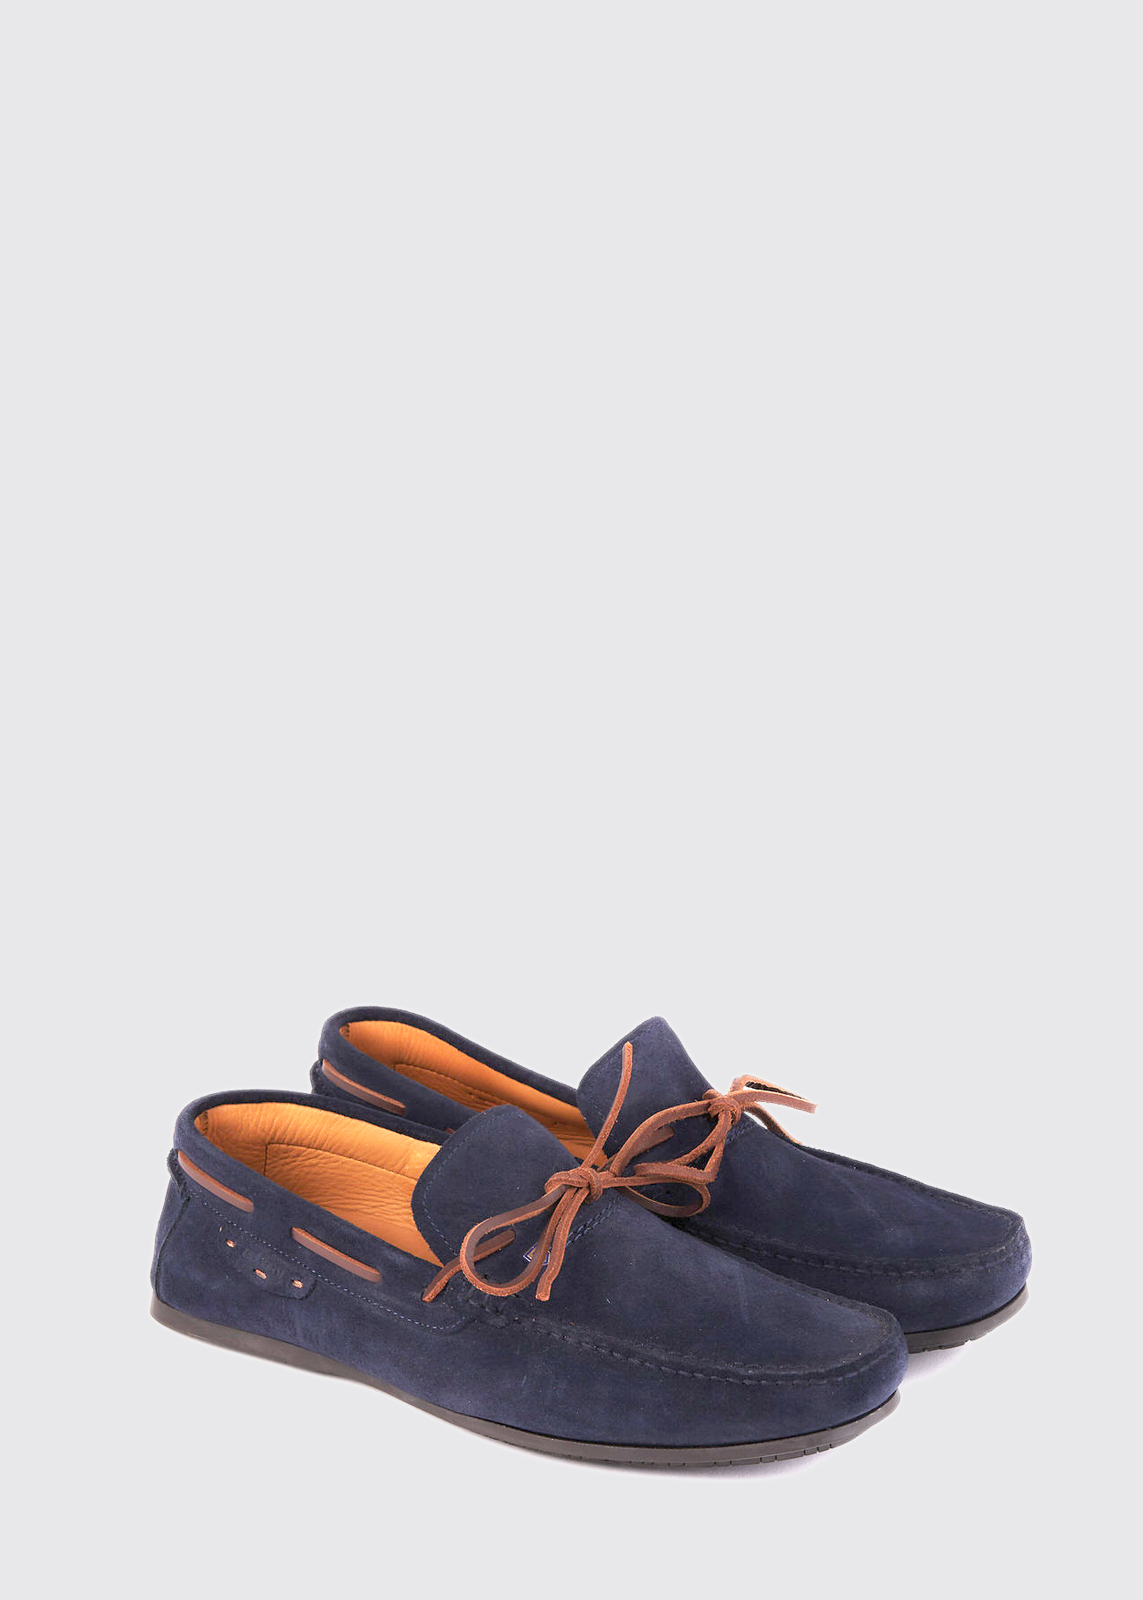 Nevis Moccasin - French Navy